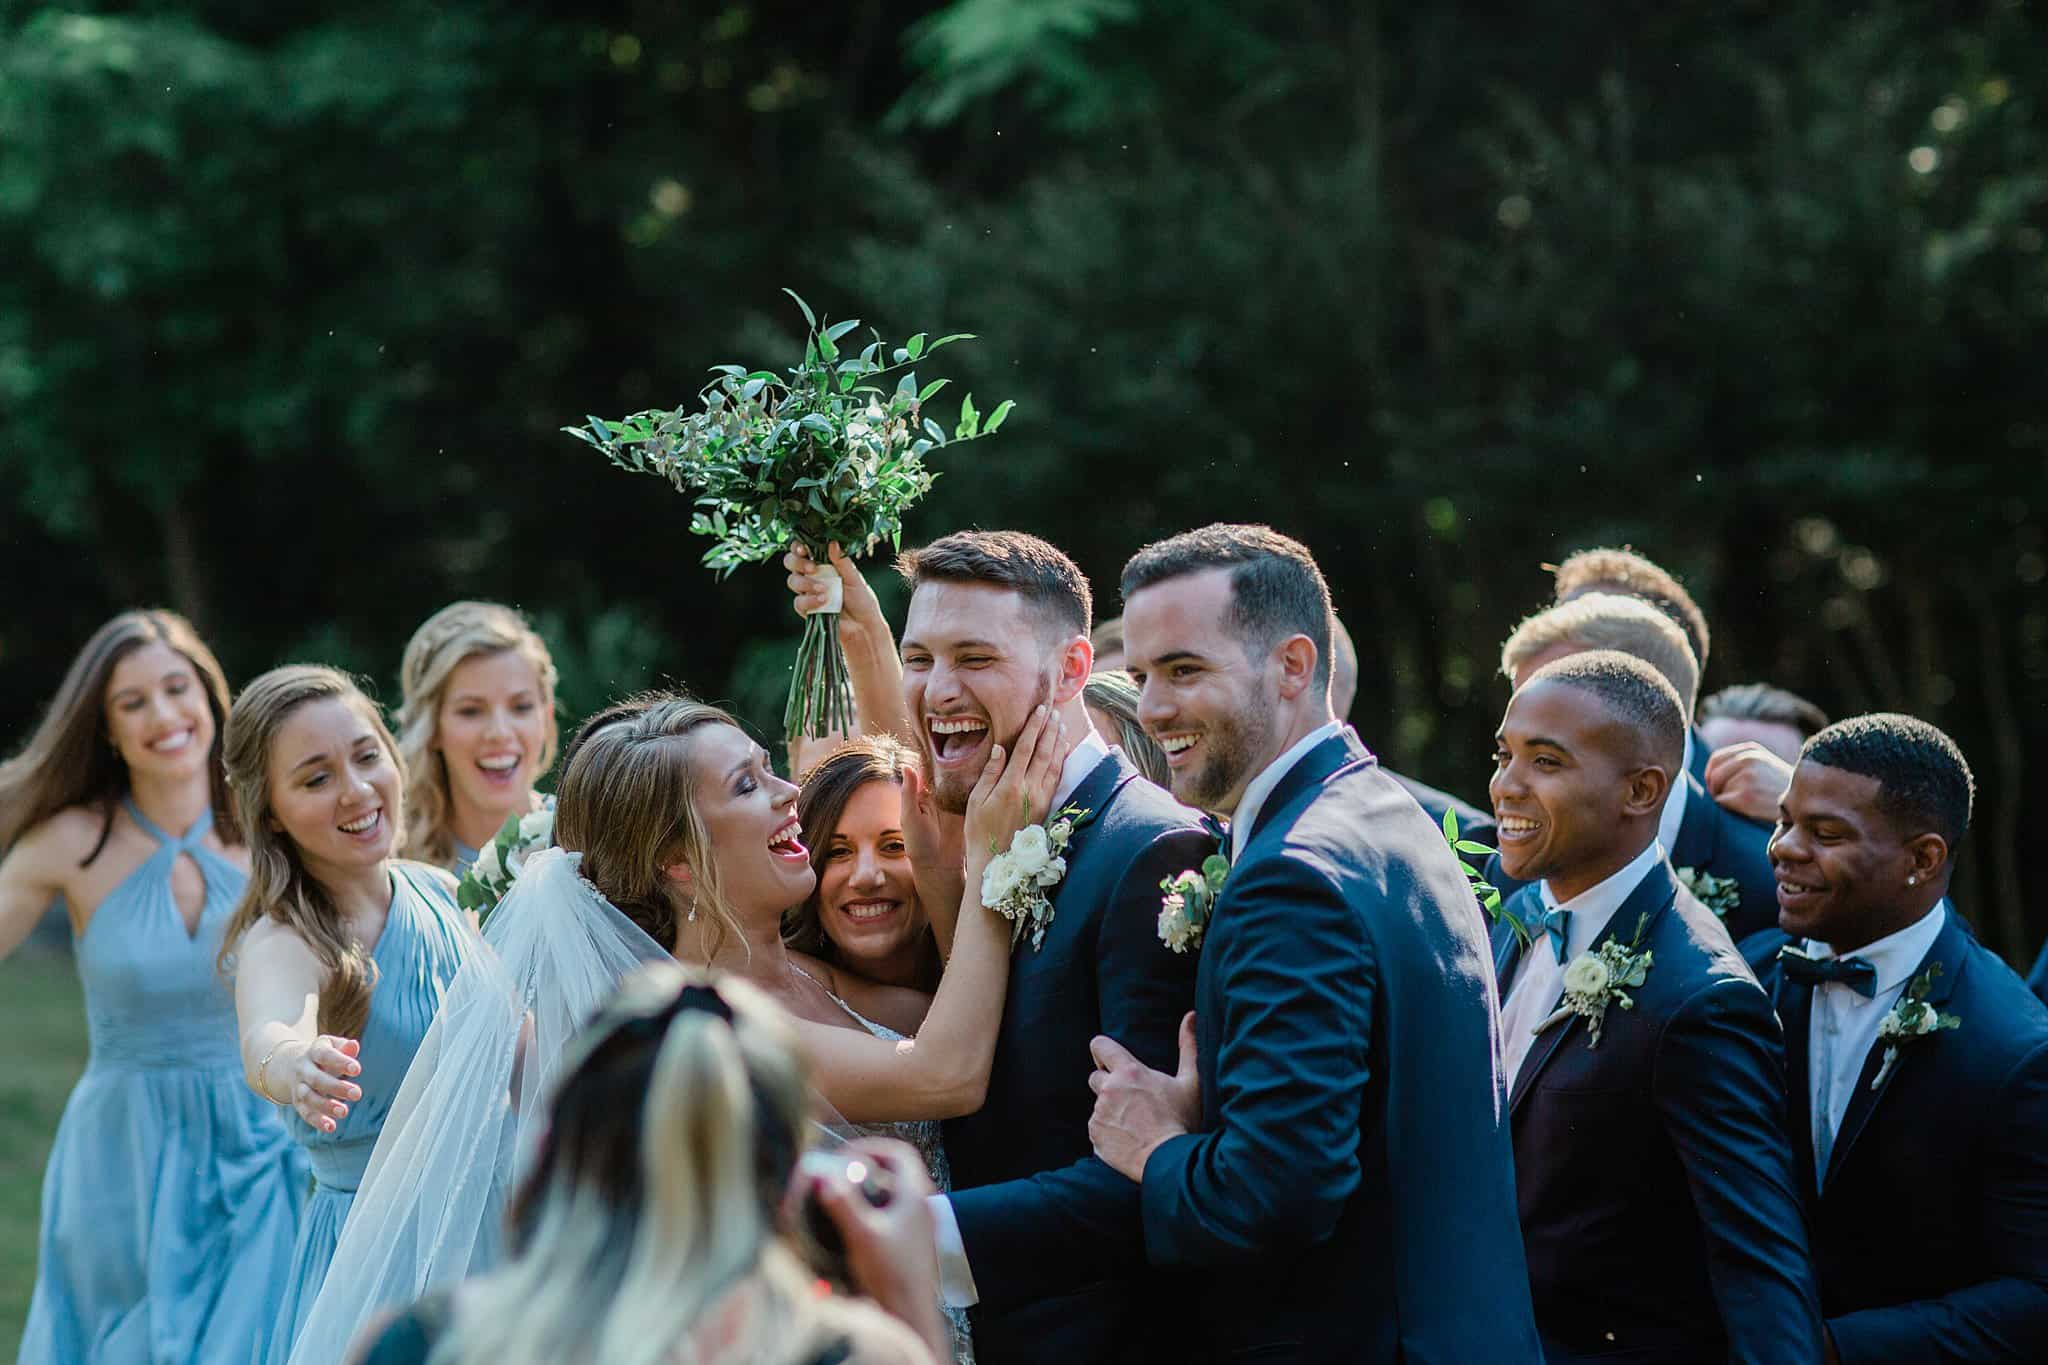 Bride and Groom with Bridal party smiling